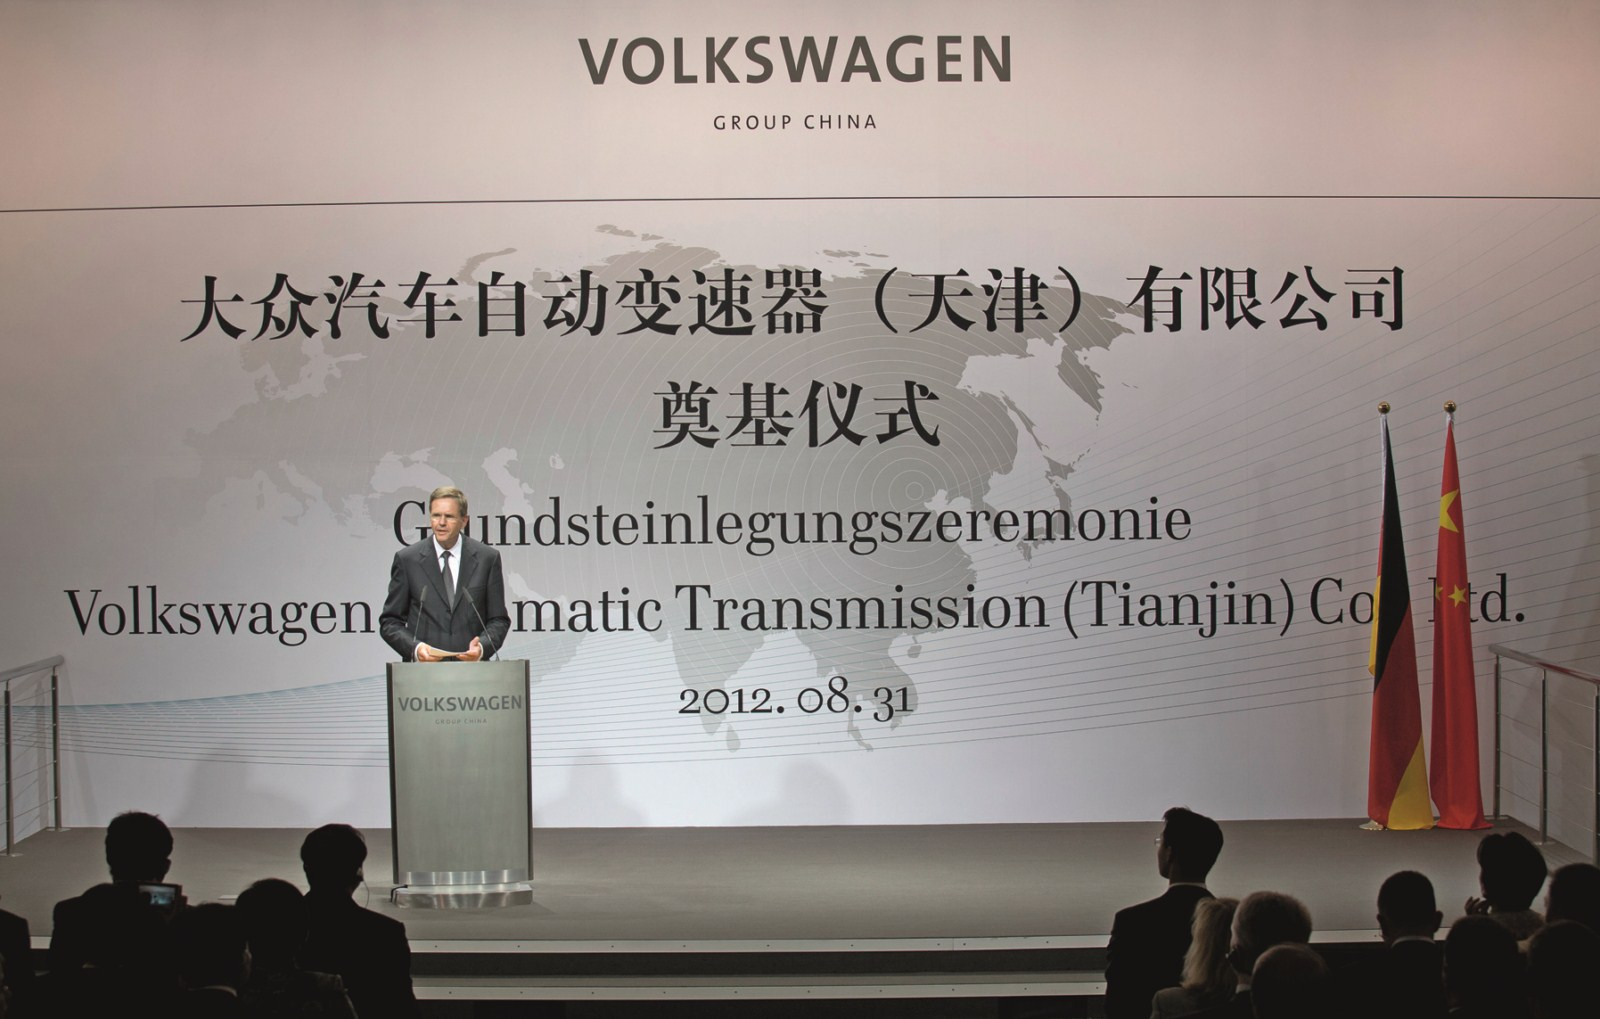 Paper / essay Administrative processes: Volkswagen in China